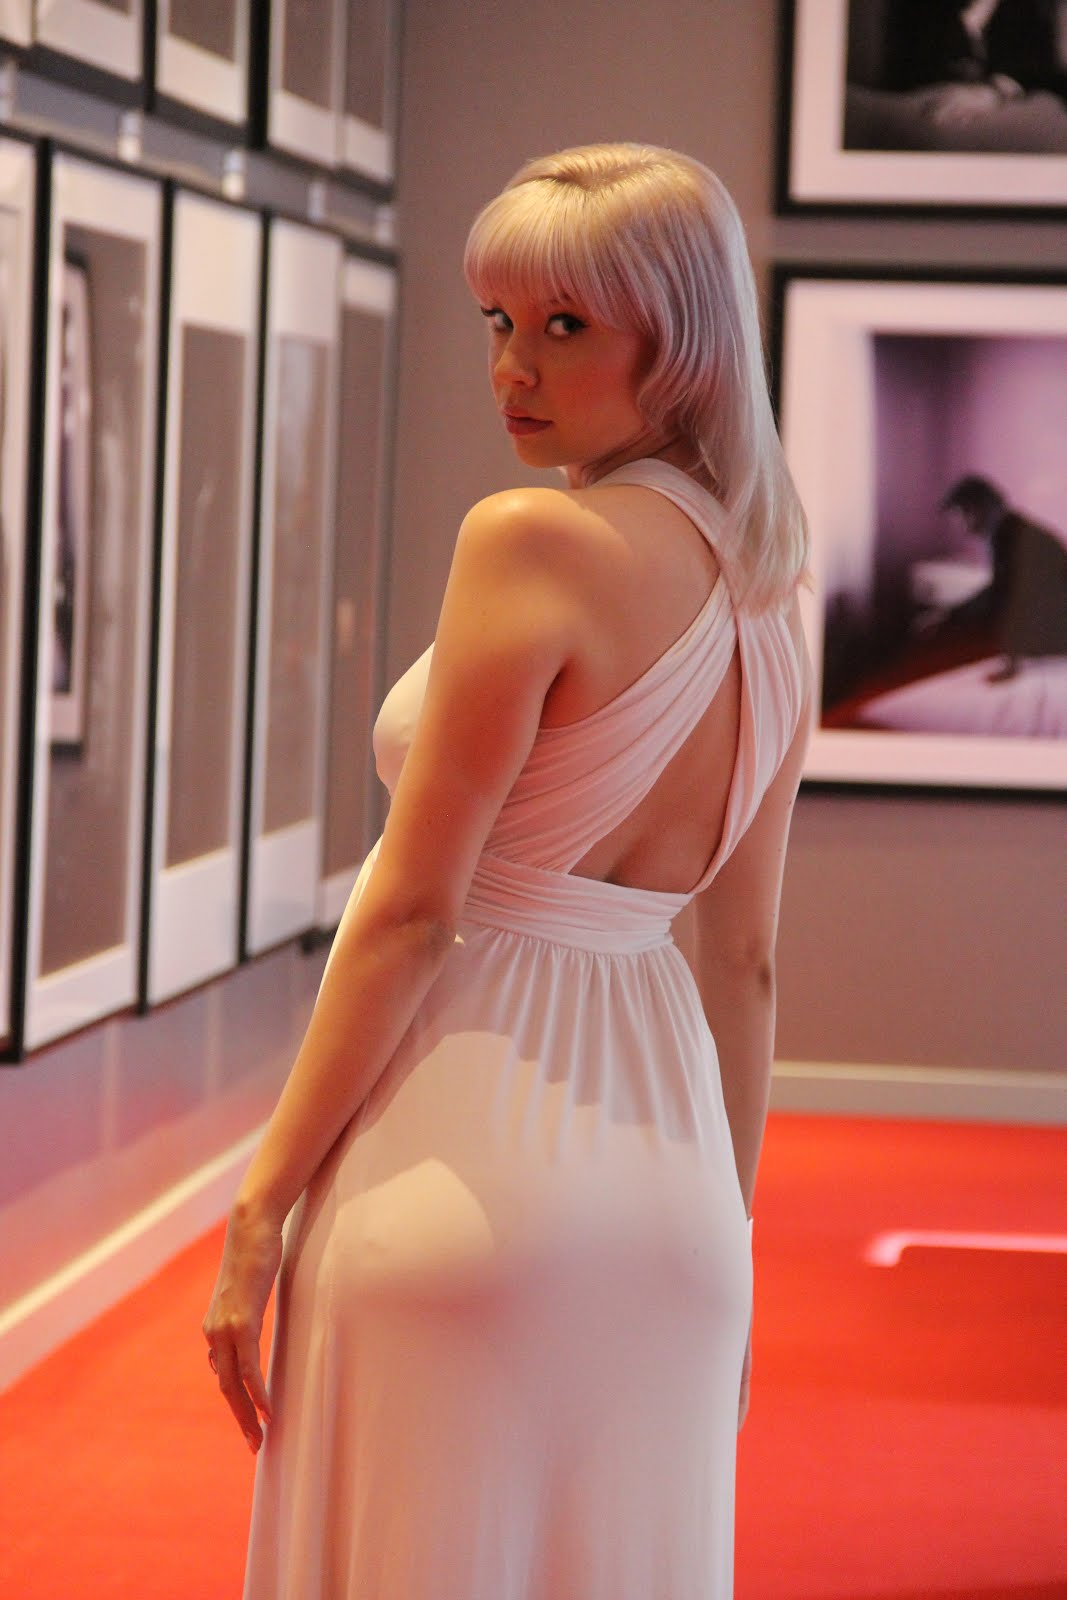 Hot Young Talent Dana Waters Exploding Onto The Scene In 2017 In Hollywood She Has Recently Landed Several Major Hollywood Deals With Husband Director Sean